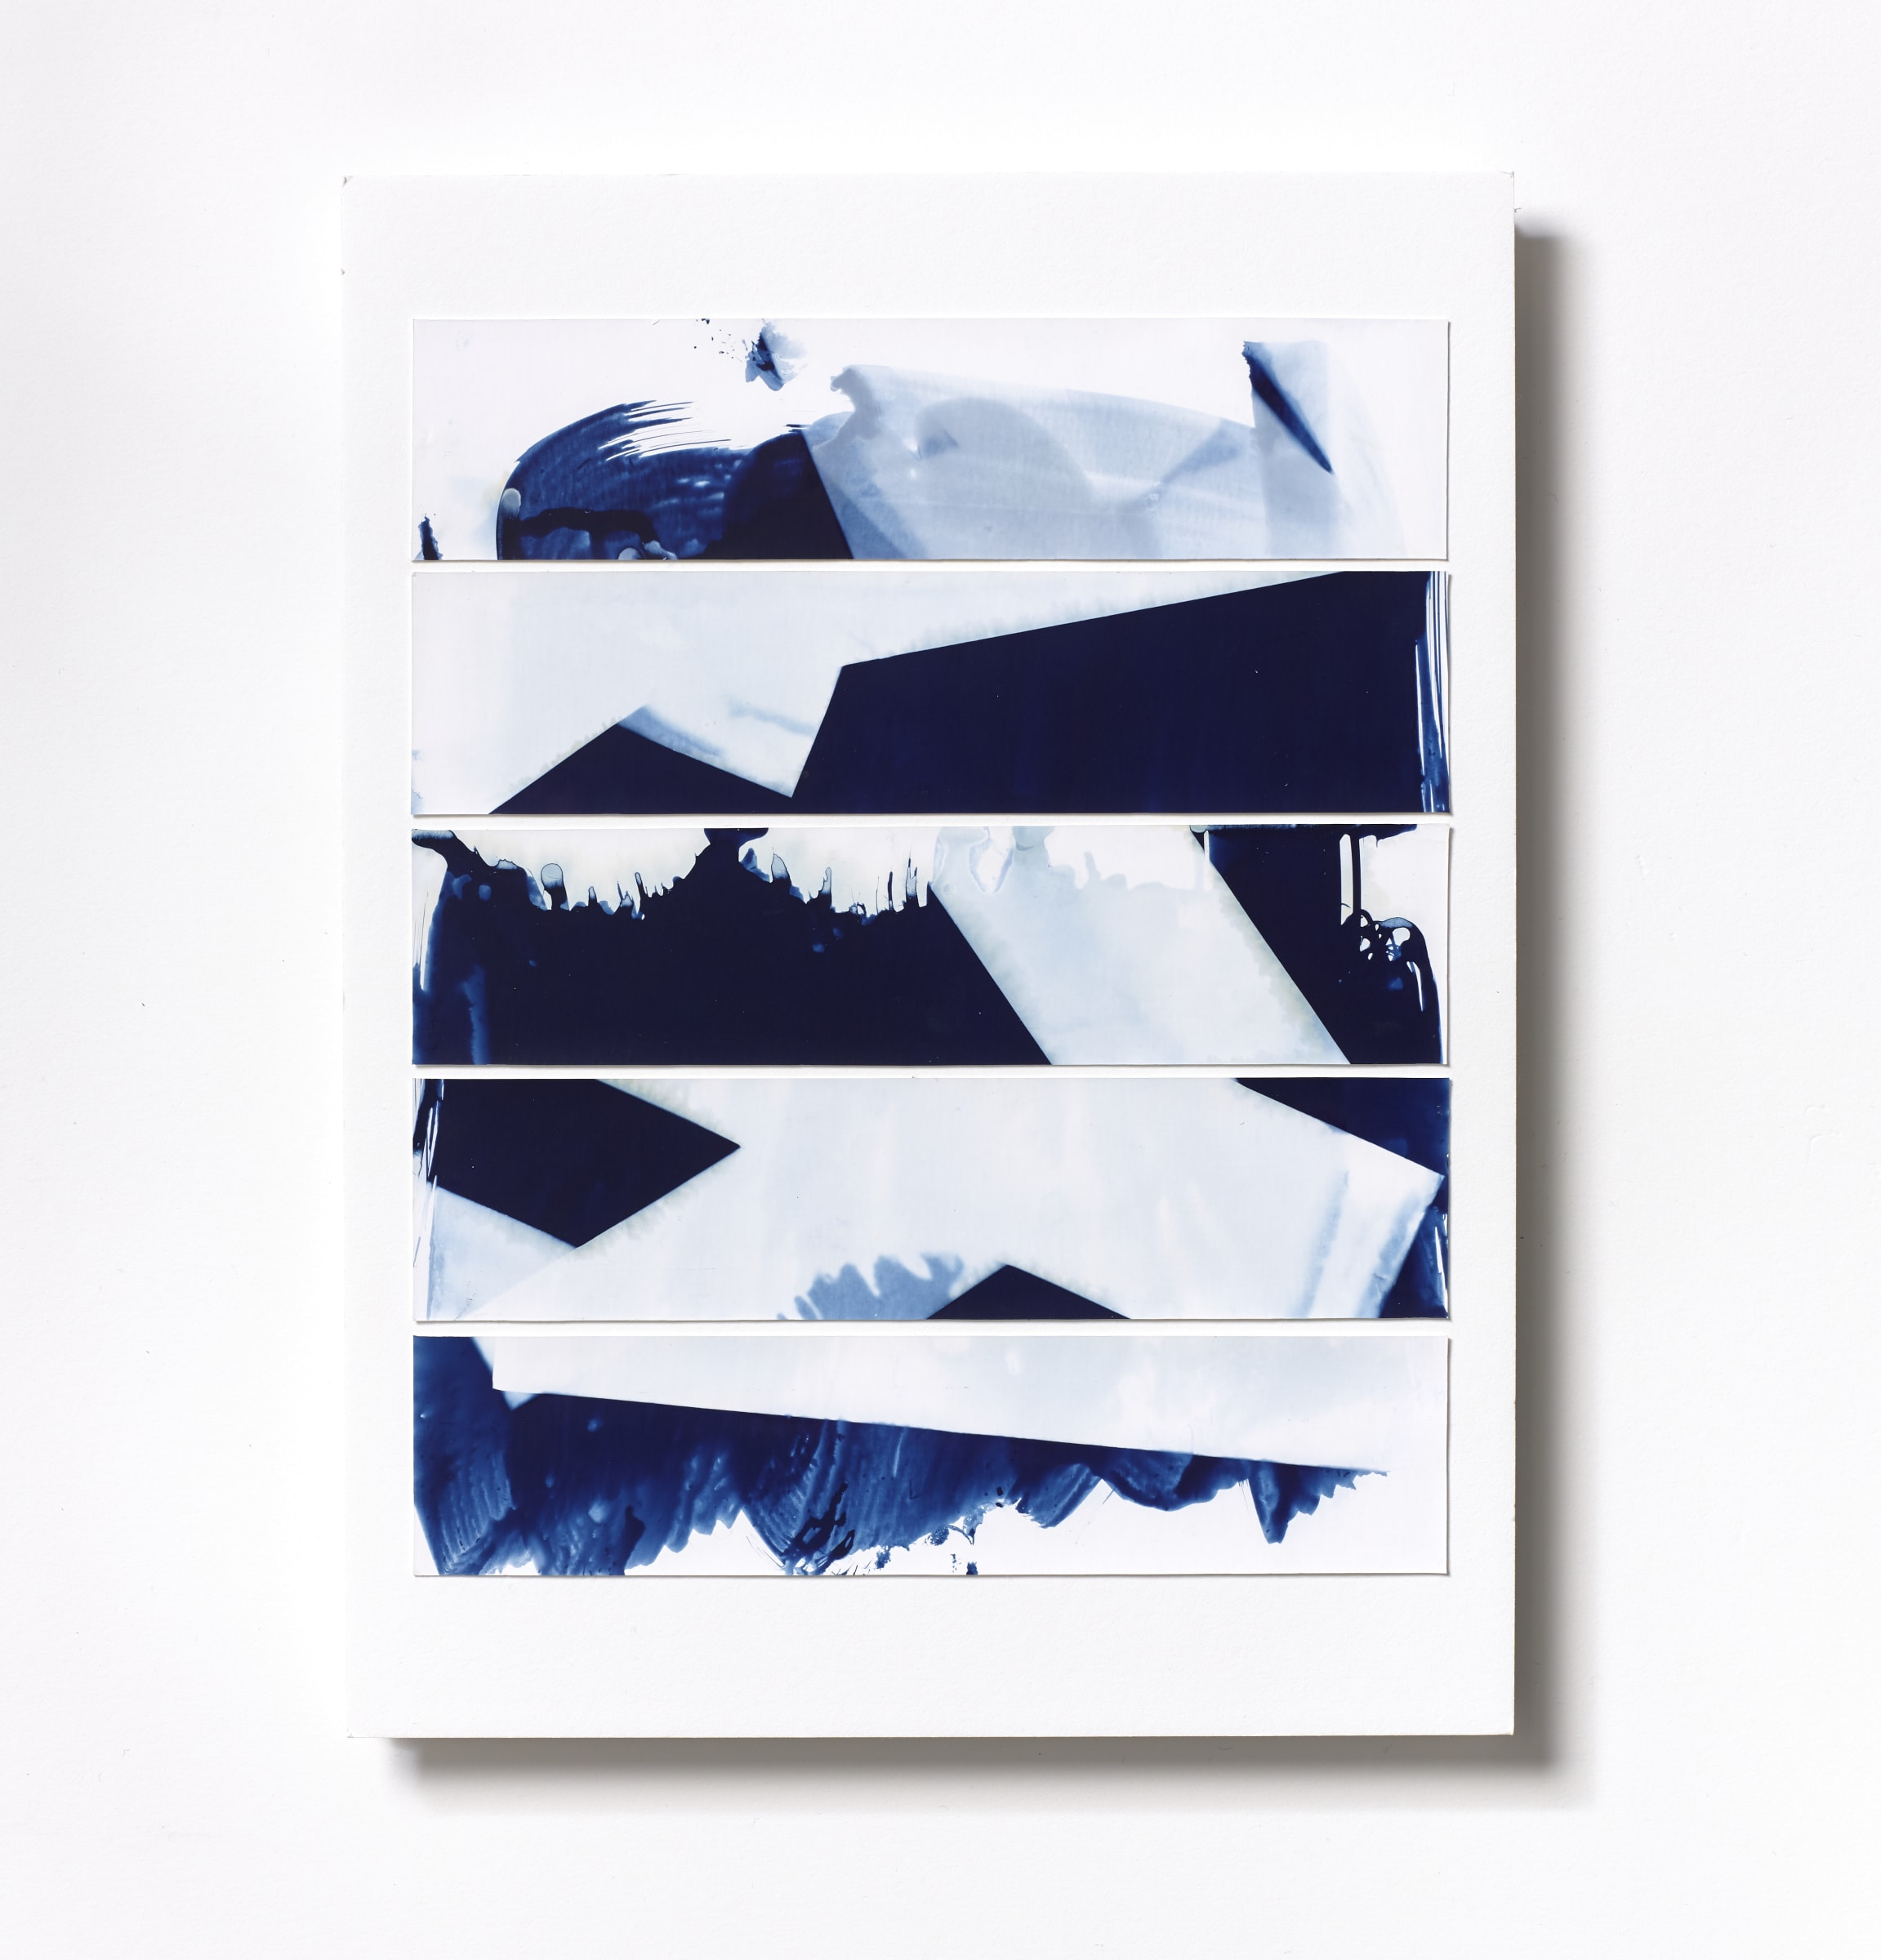 """<span class=""""link fancybox-details-link""""><a href=""""/content/feature/120/artworks562/"""">View Detail Page</a></span><div class=""""medium"""">Cyanotype Collage of five handpainted 1 3/4"""" x 7 7/8"""" cyanotype photograms on a 12 x 9 inch 8-ply museum board<br /> Print only<br /> Unique</div> <div class=""""dimensions"""">30.5 x 22.9 cm<br /> 12 x 9 in</div>"""